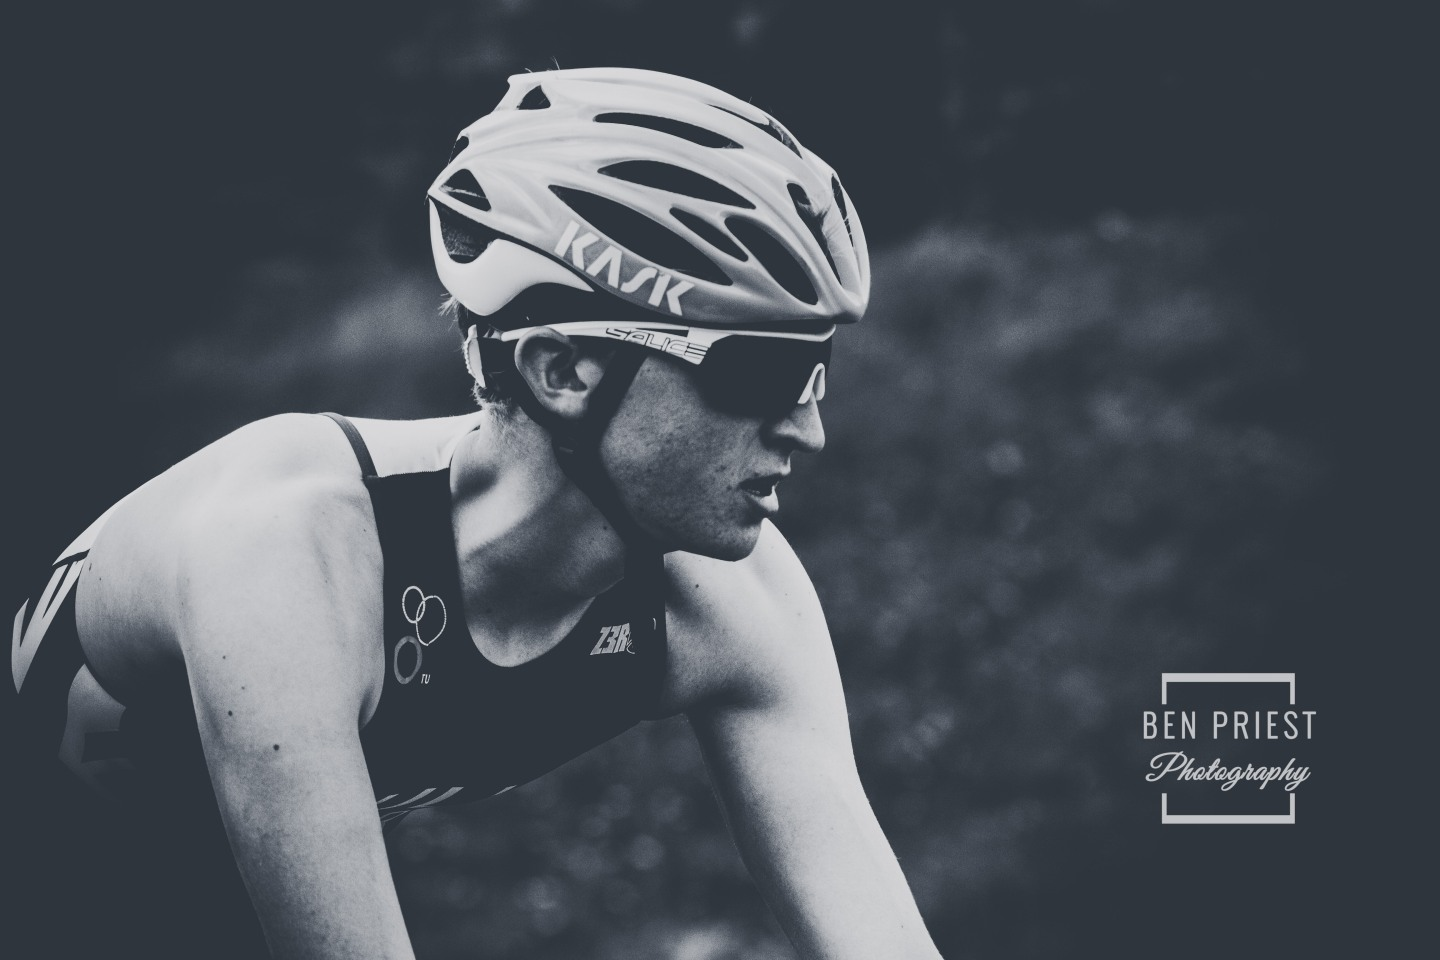 Team GB Triathlete – Jordan Hull – Cumbrian Ambassador for the World Health Innovation Summit no.11